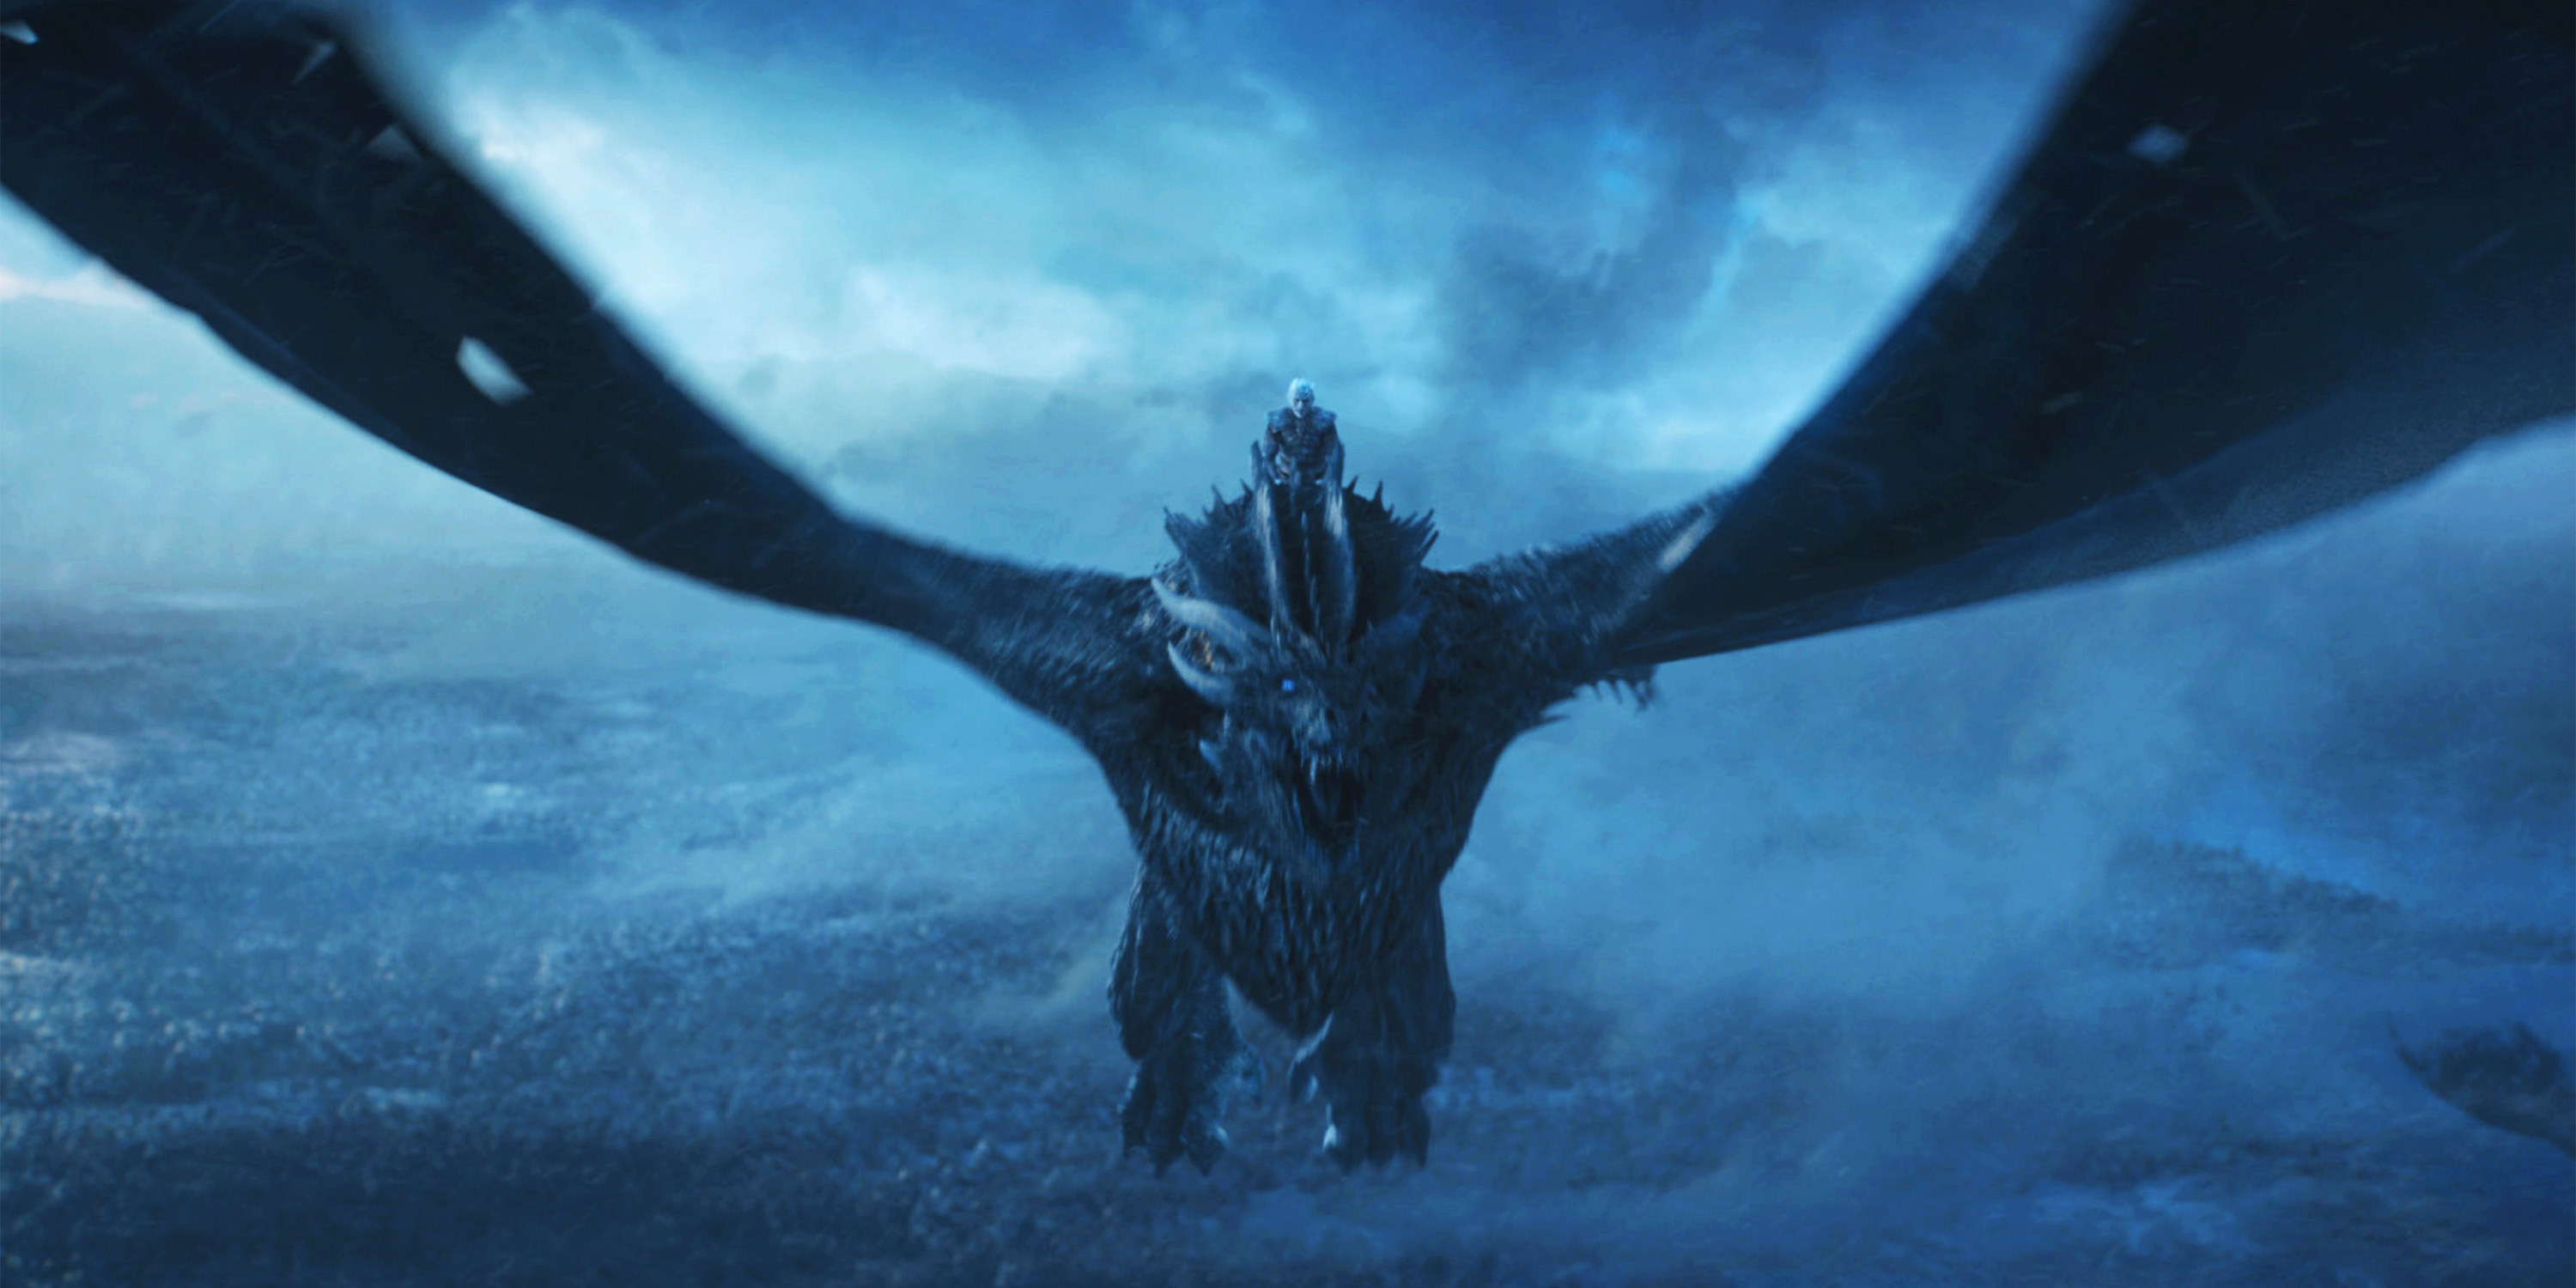 Is Viserion An Ice Dragon On Game Of Thrones Game Of Thrones Night King Dragon 3000x1500 Download Hd Wallpaper Wallpapertip